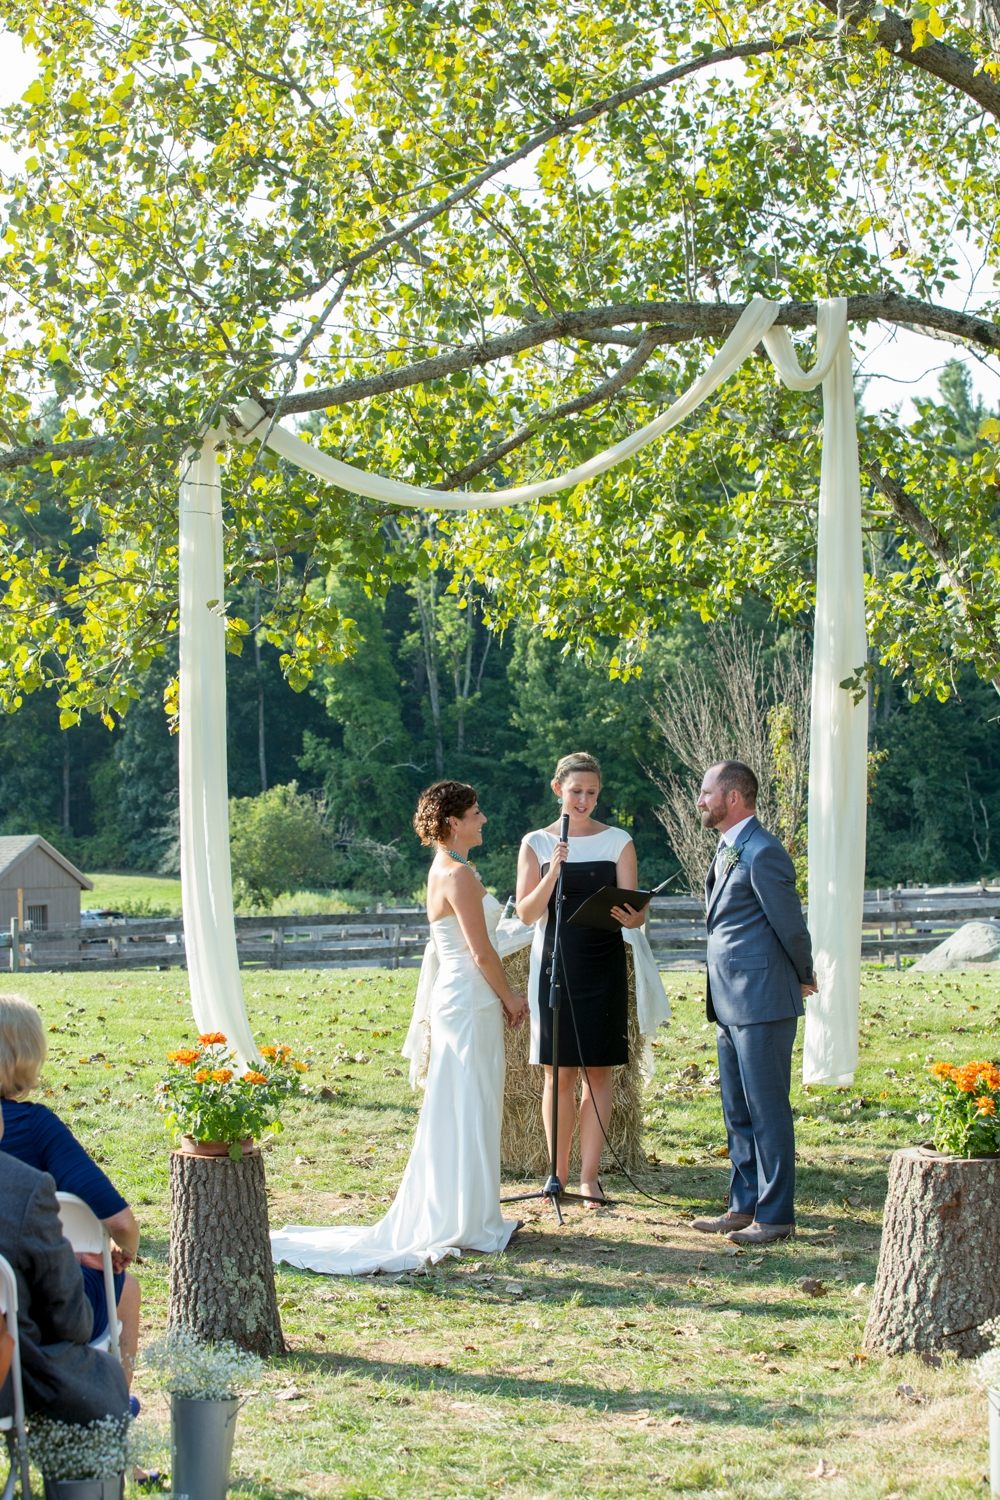 BearSpotFarmWedding_Nikki&Alex_0017.jpg